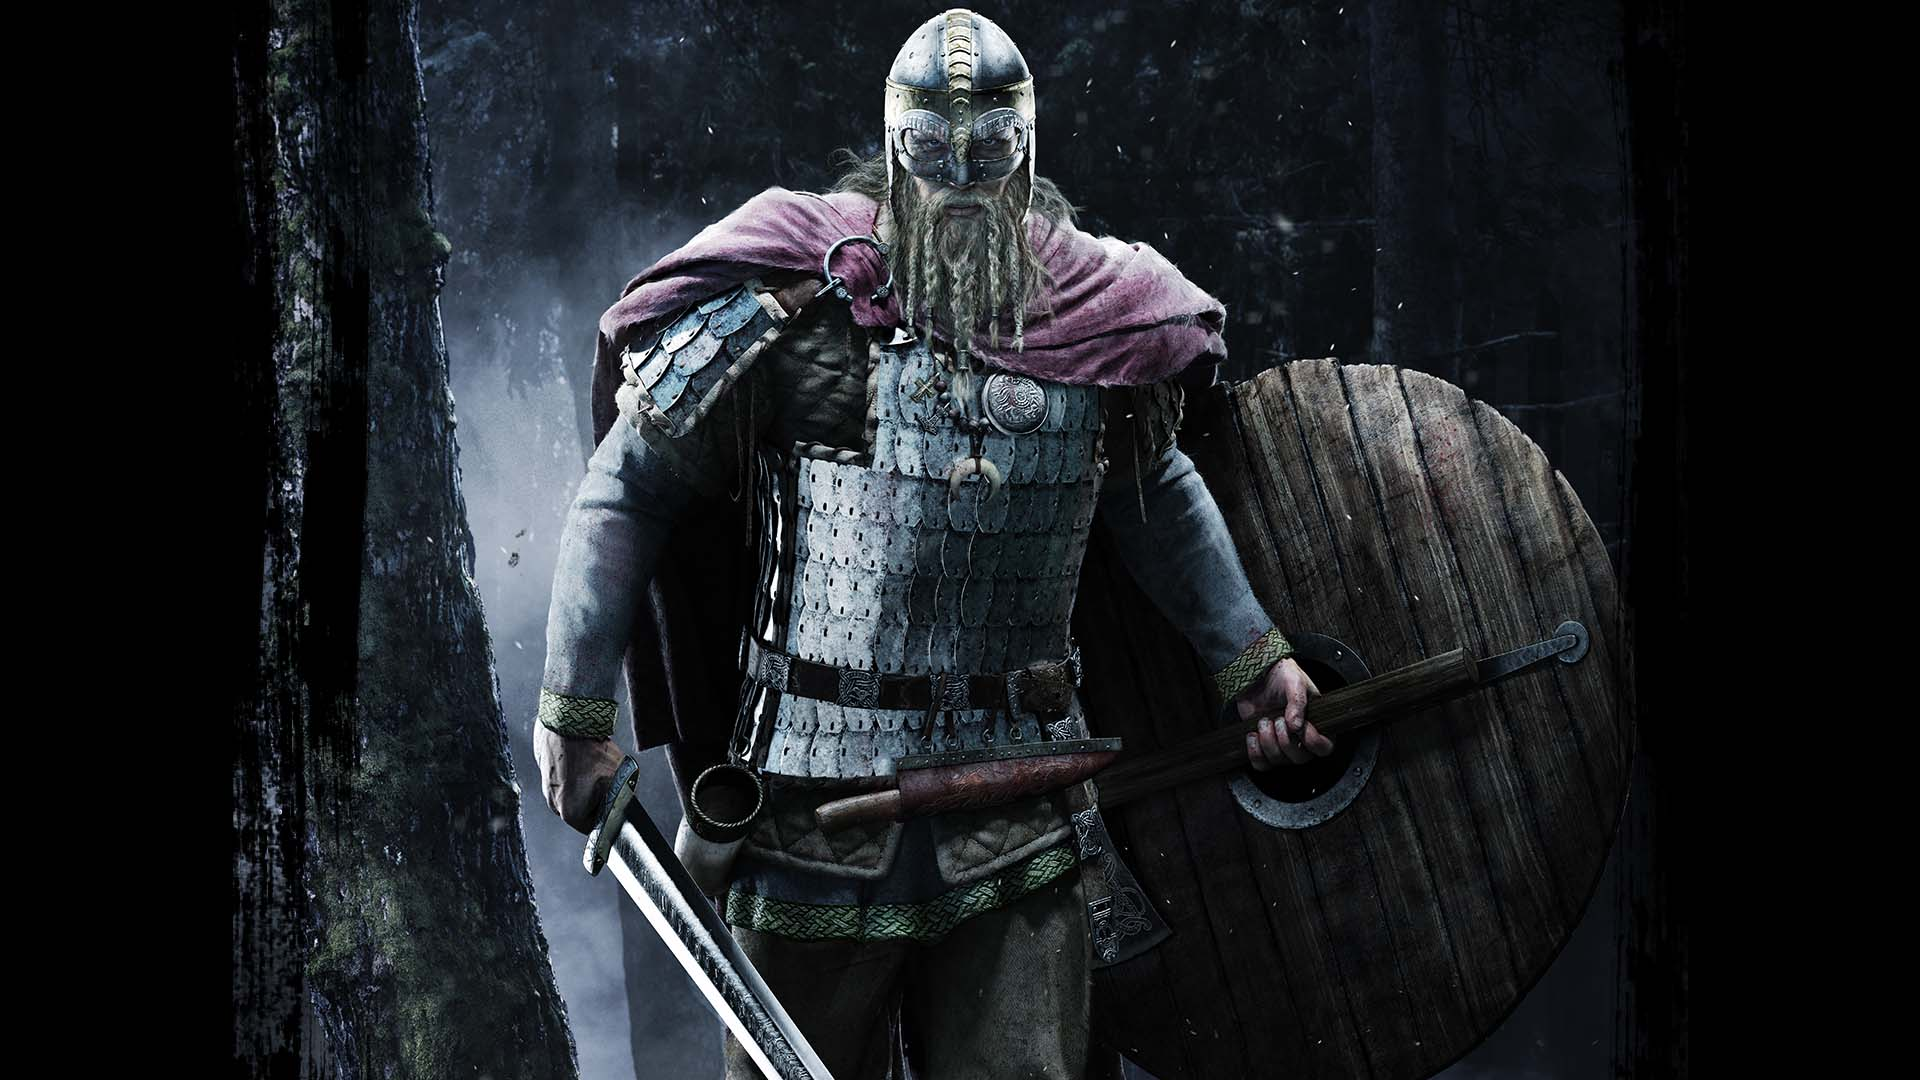 War_of_the_Vikings_featured-image